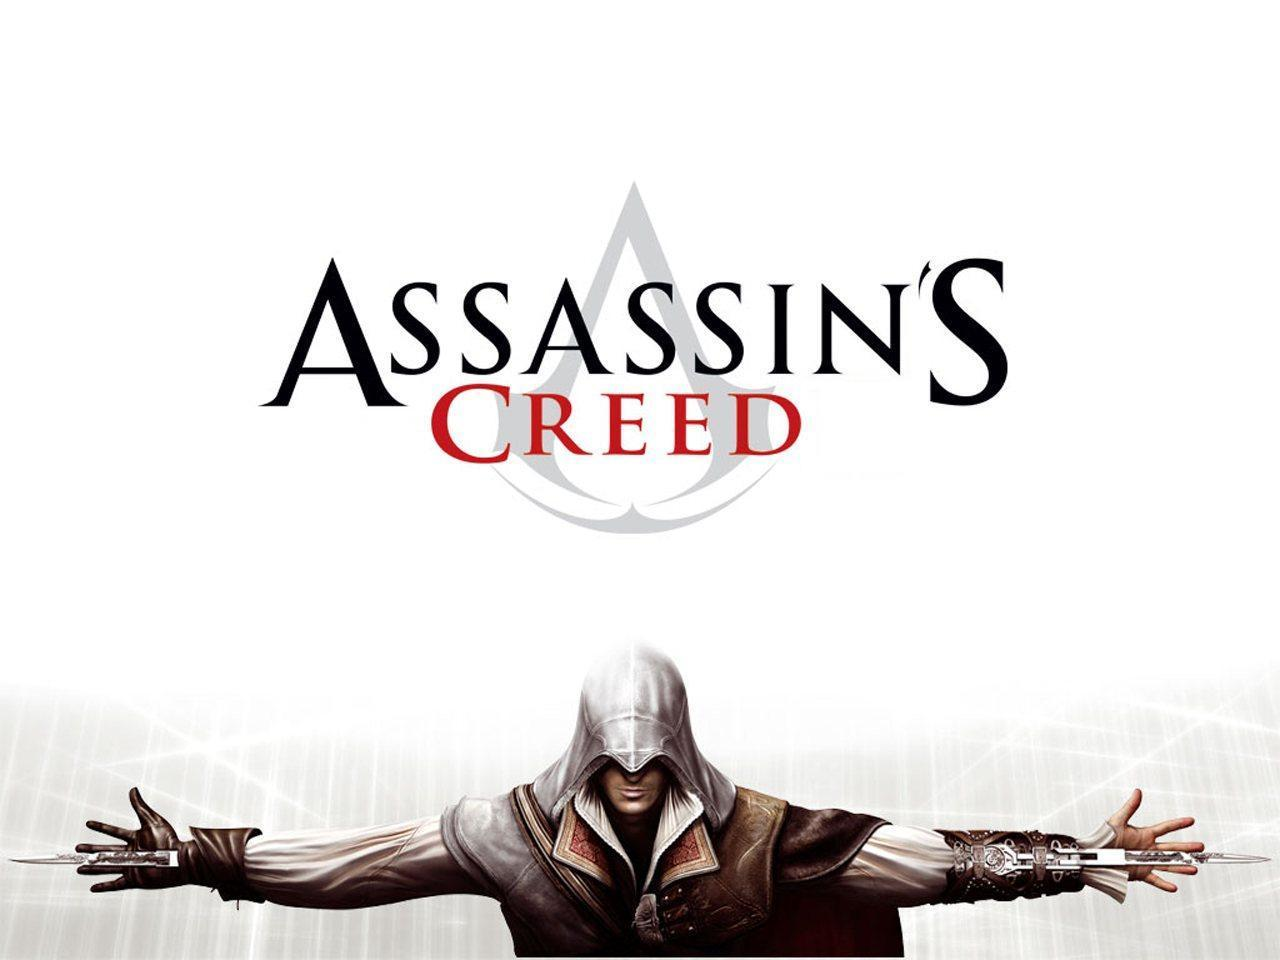 assassins creed Ezio HD Wallpaper